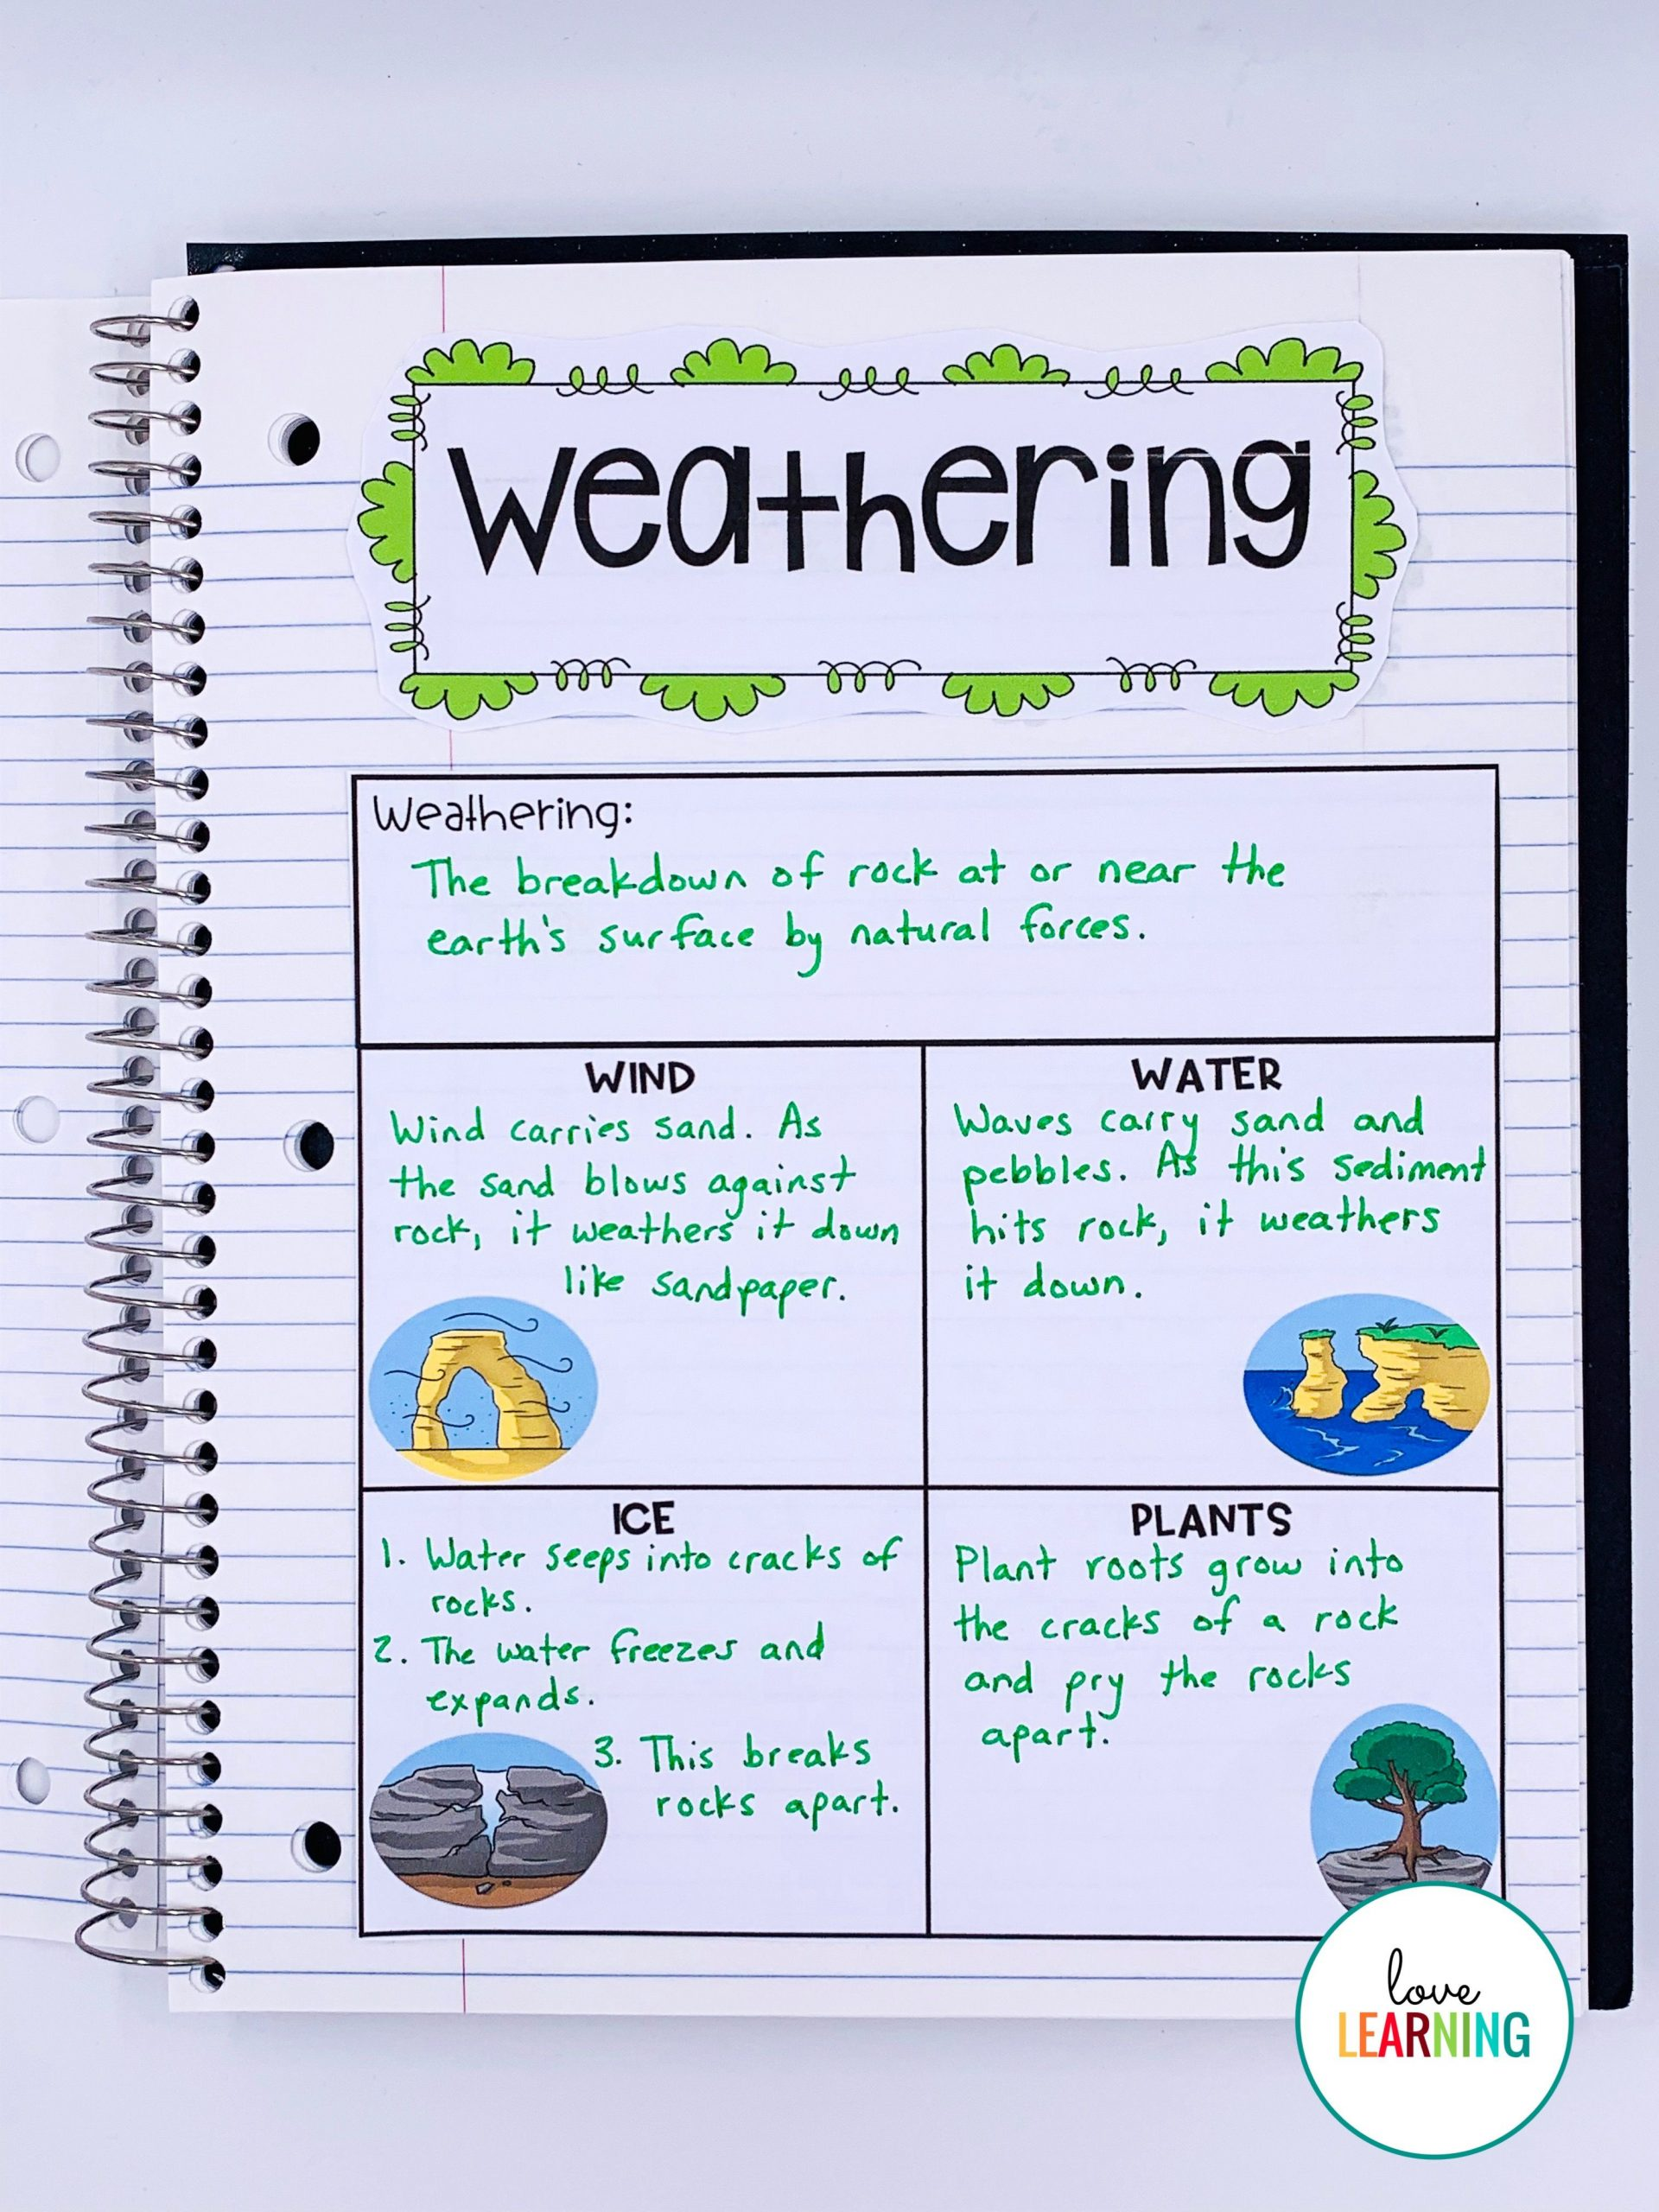 30 Weathering And Erosion Worksheet